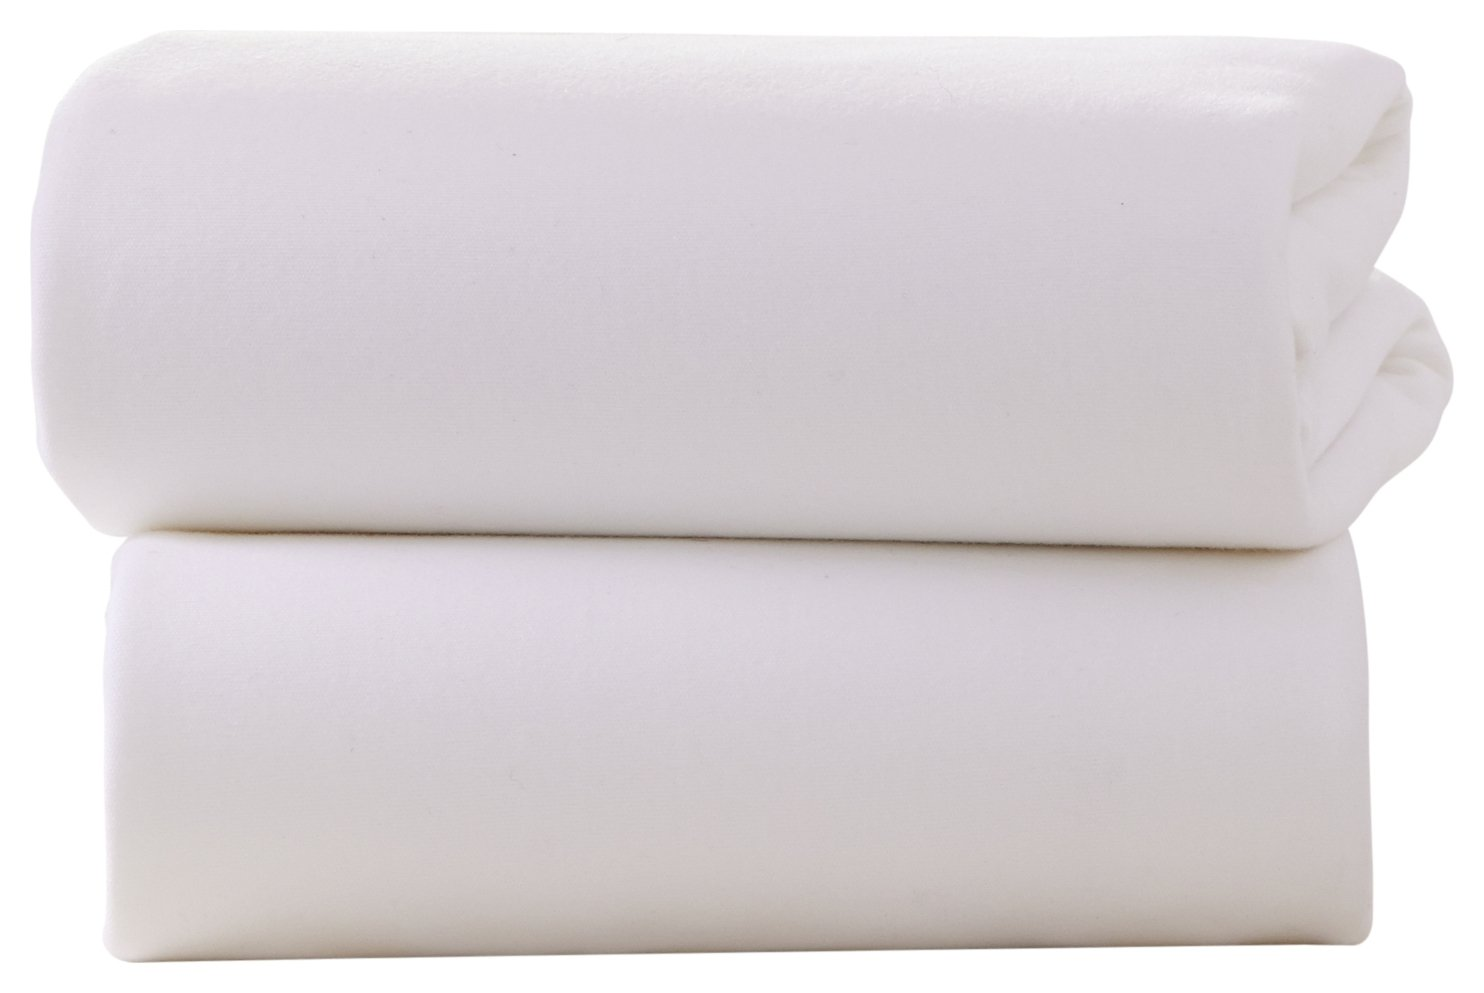 Argos Fitted Bed Sheets King Size